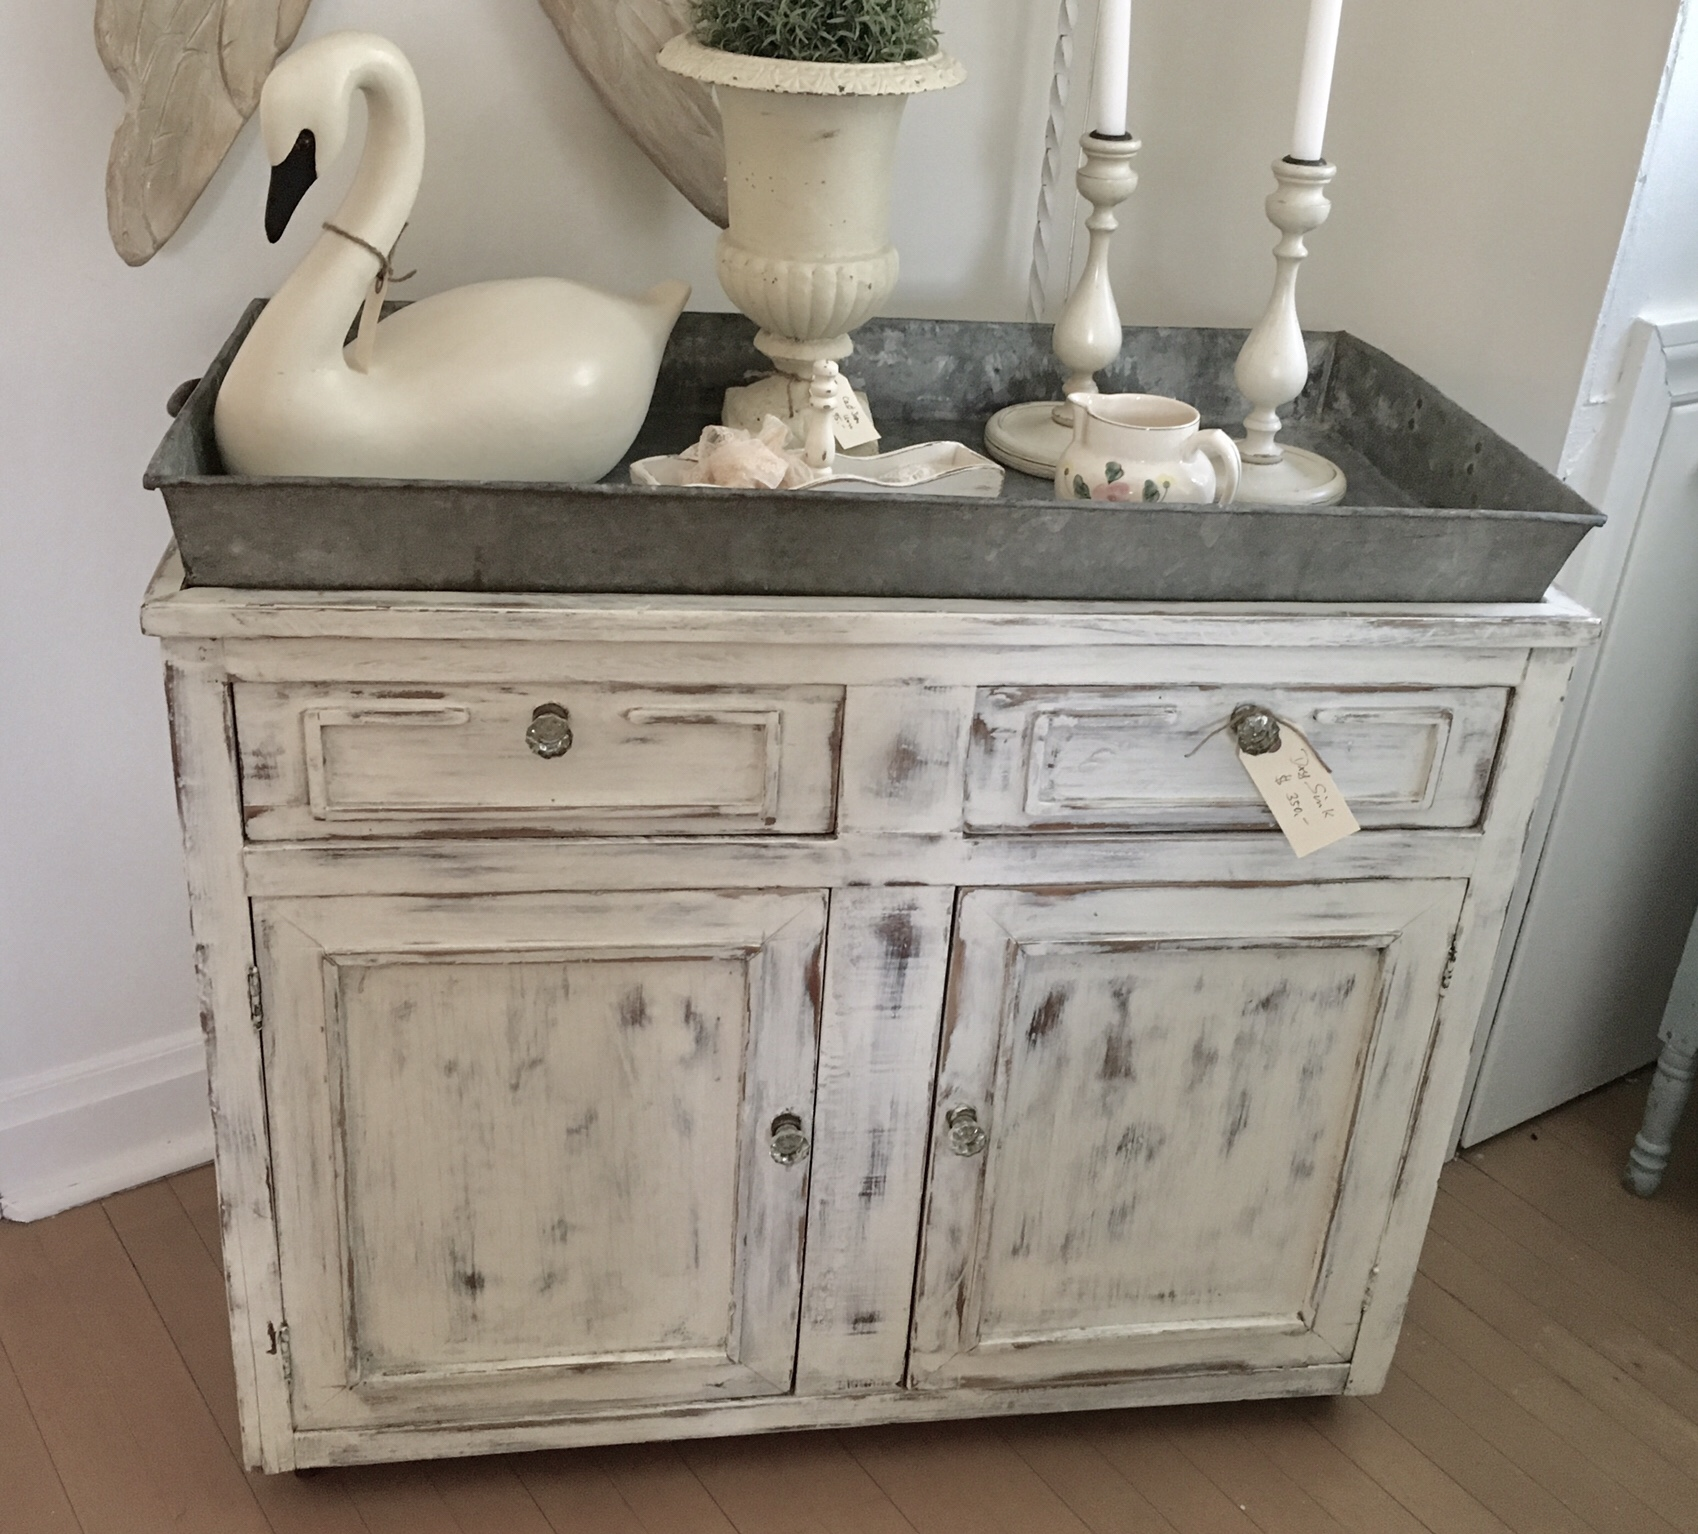 exceptional Antique Dry Sink For Sale Part - 12: For Sale: Dry Sink with Galvanized Tray Top